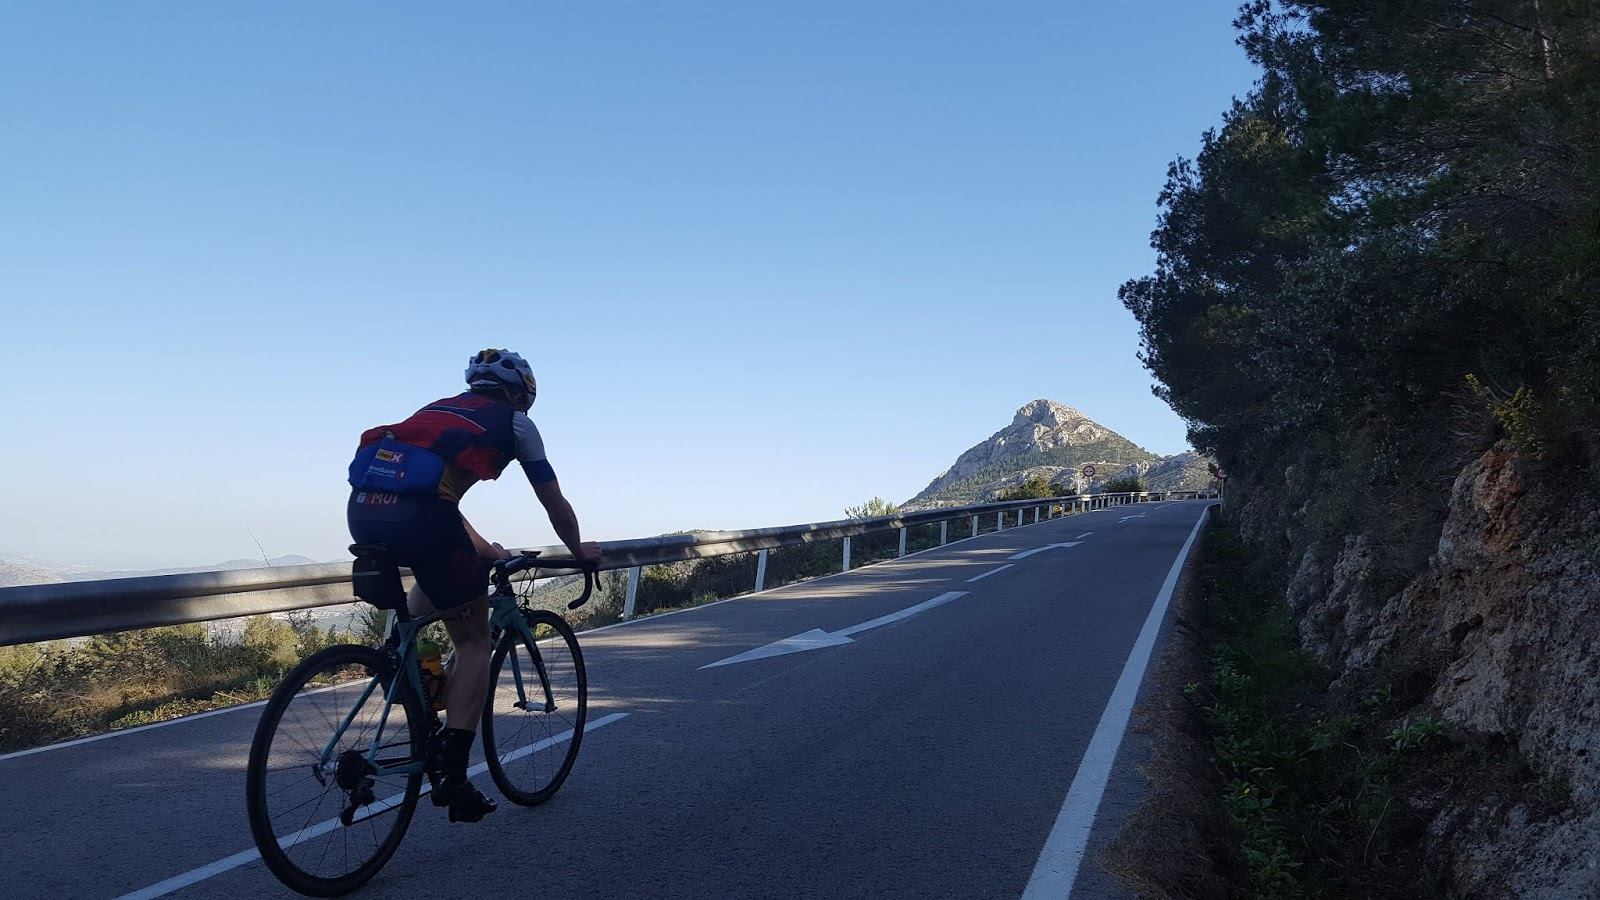 Final stretch of Coll de Rates along mountainside